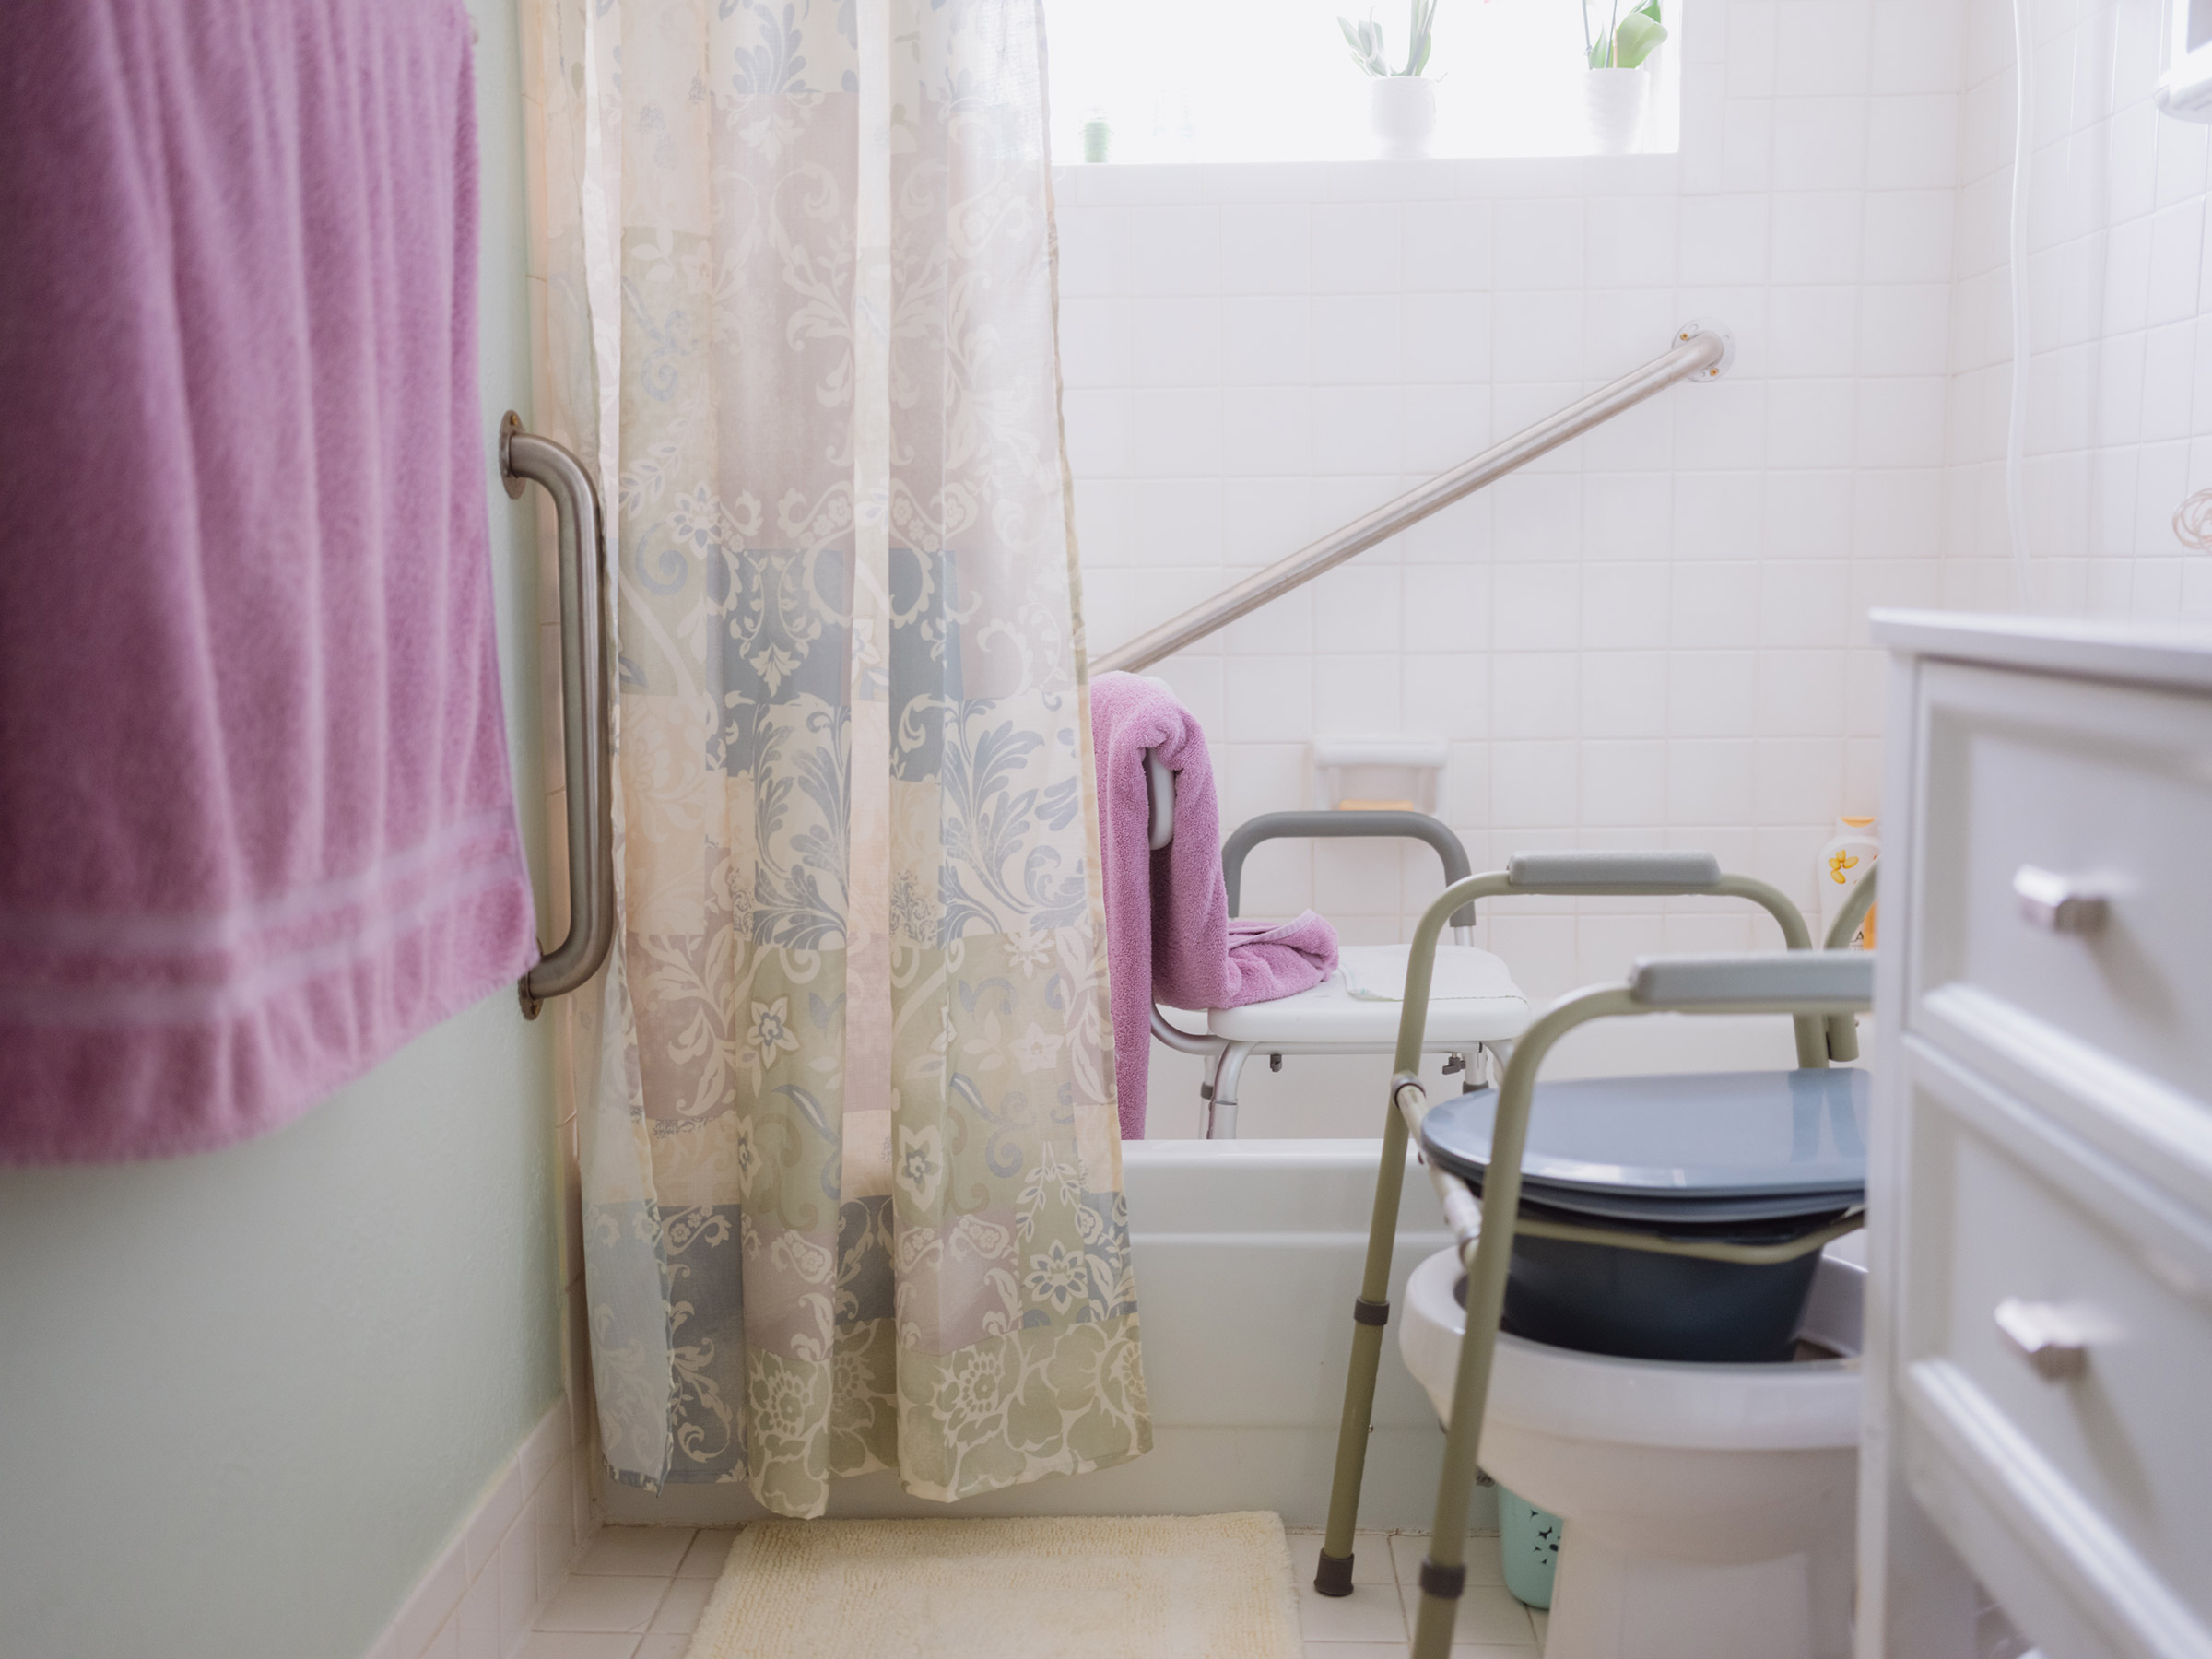 The CAPABLE program provides $1600 for a handy worker, home modifications and assistive devices.